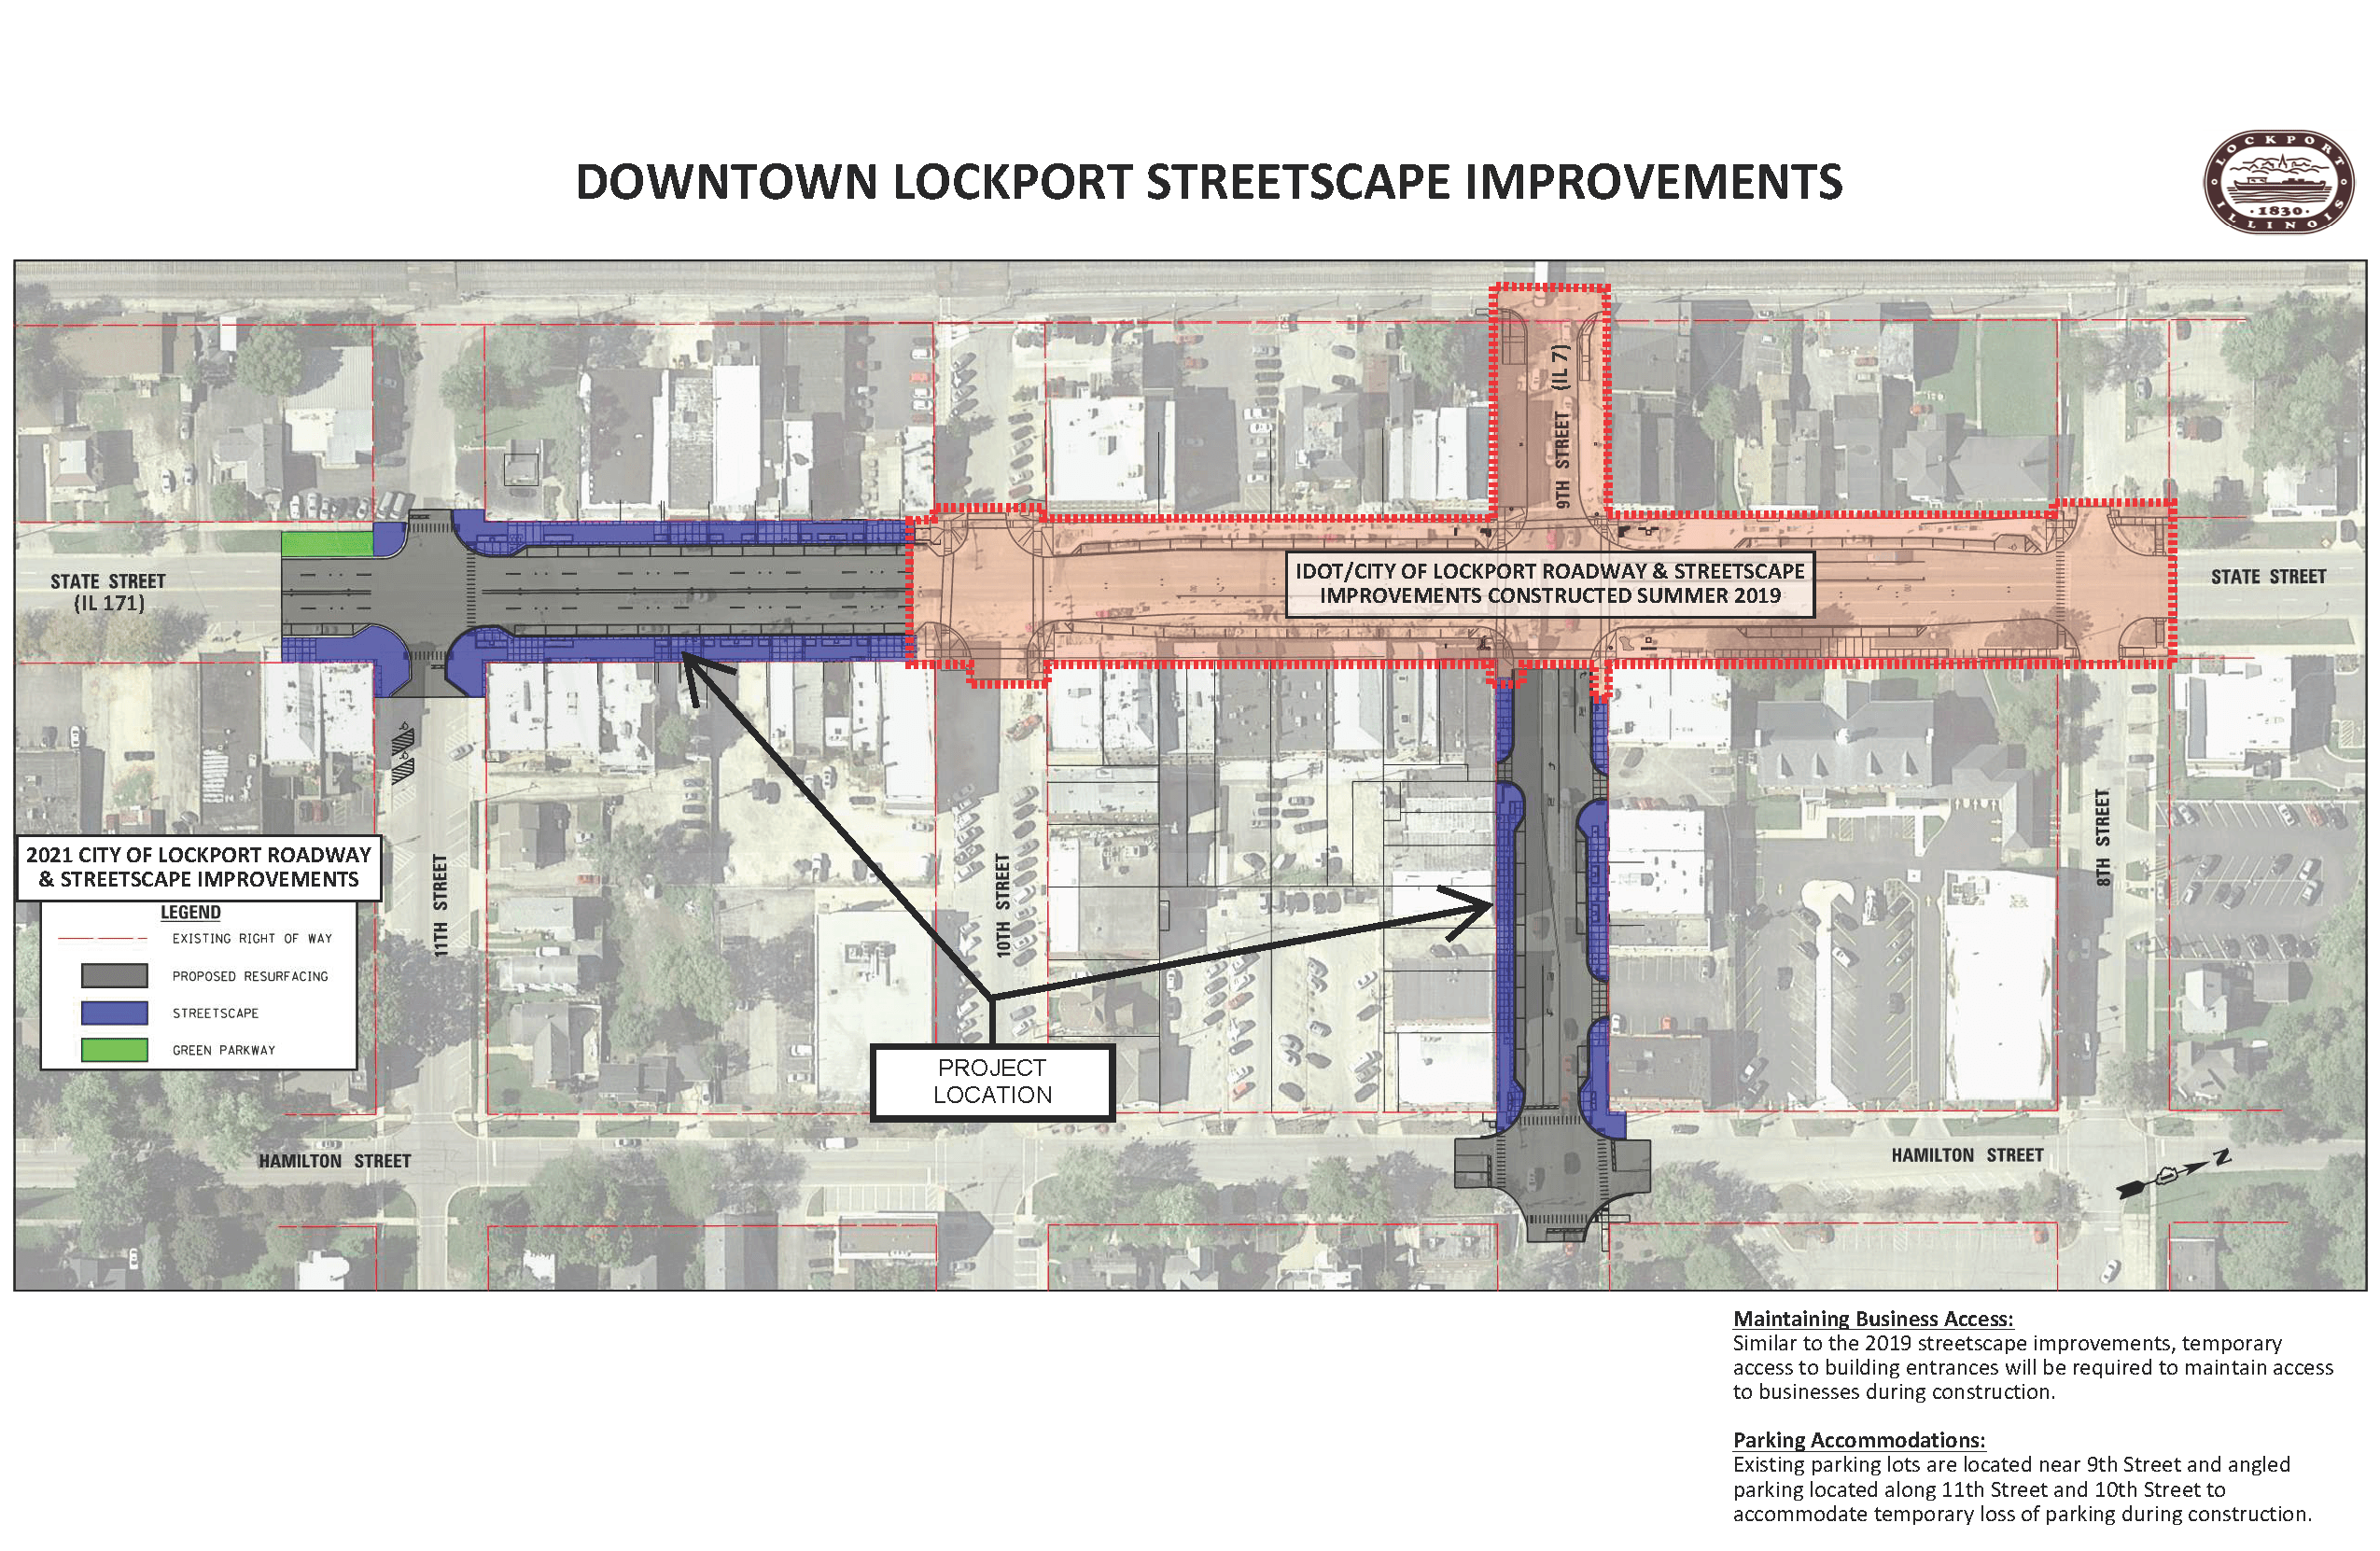 Roadway Resurfacing and Streetscape Improvements (2021)